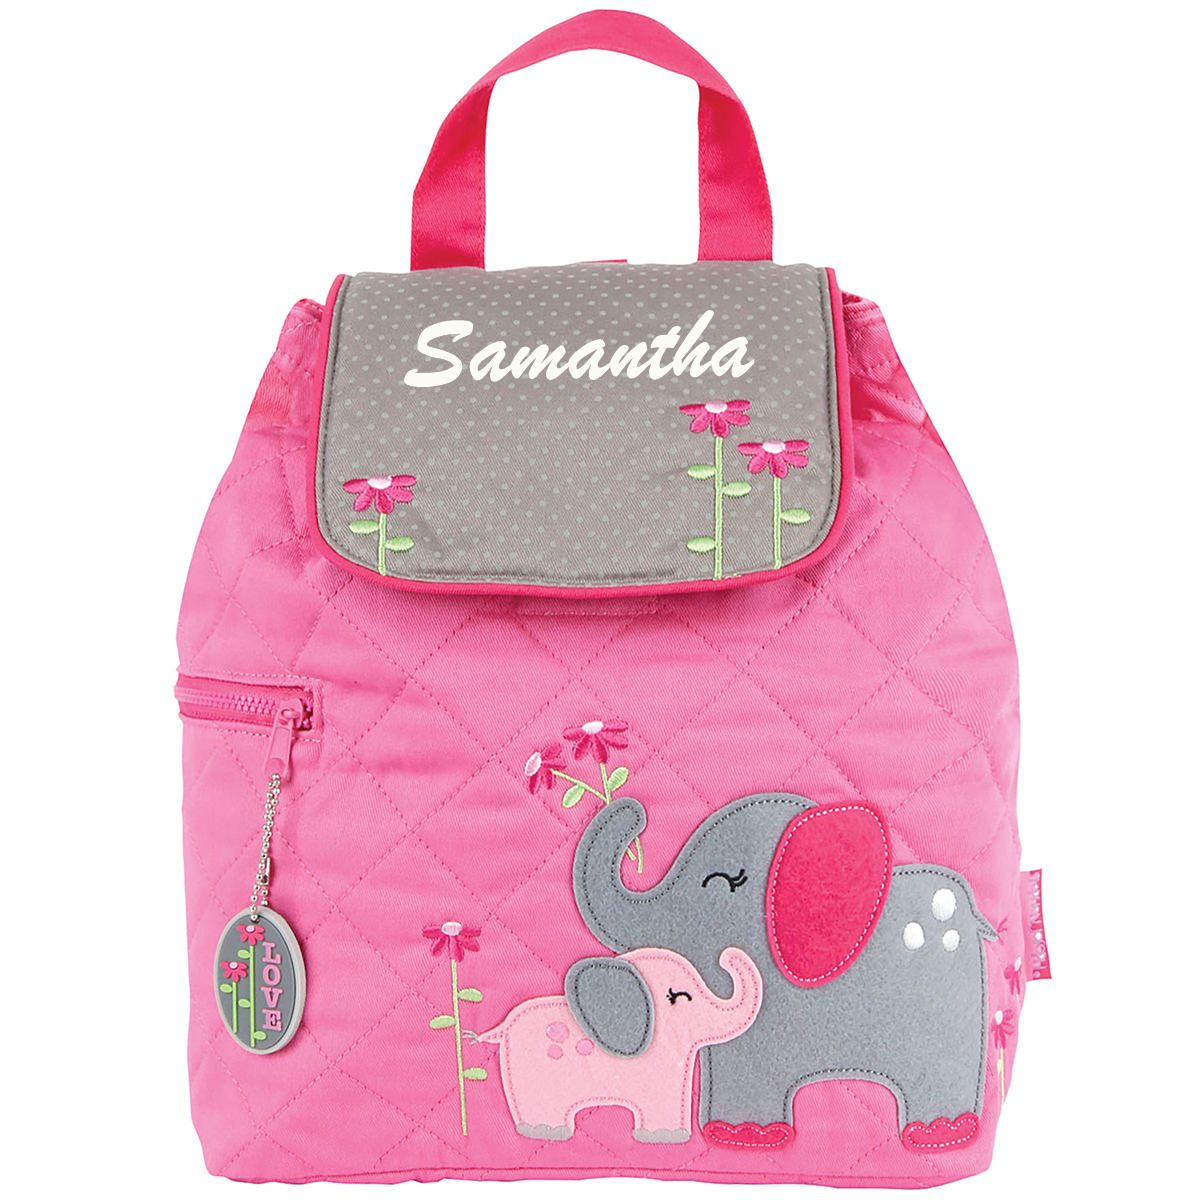 Stephen Joseph Elephant Quilted Backpack - Stitch Sensations 6a11bab94a488